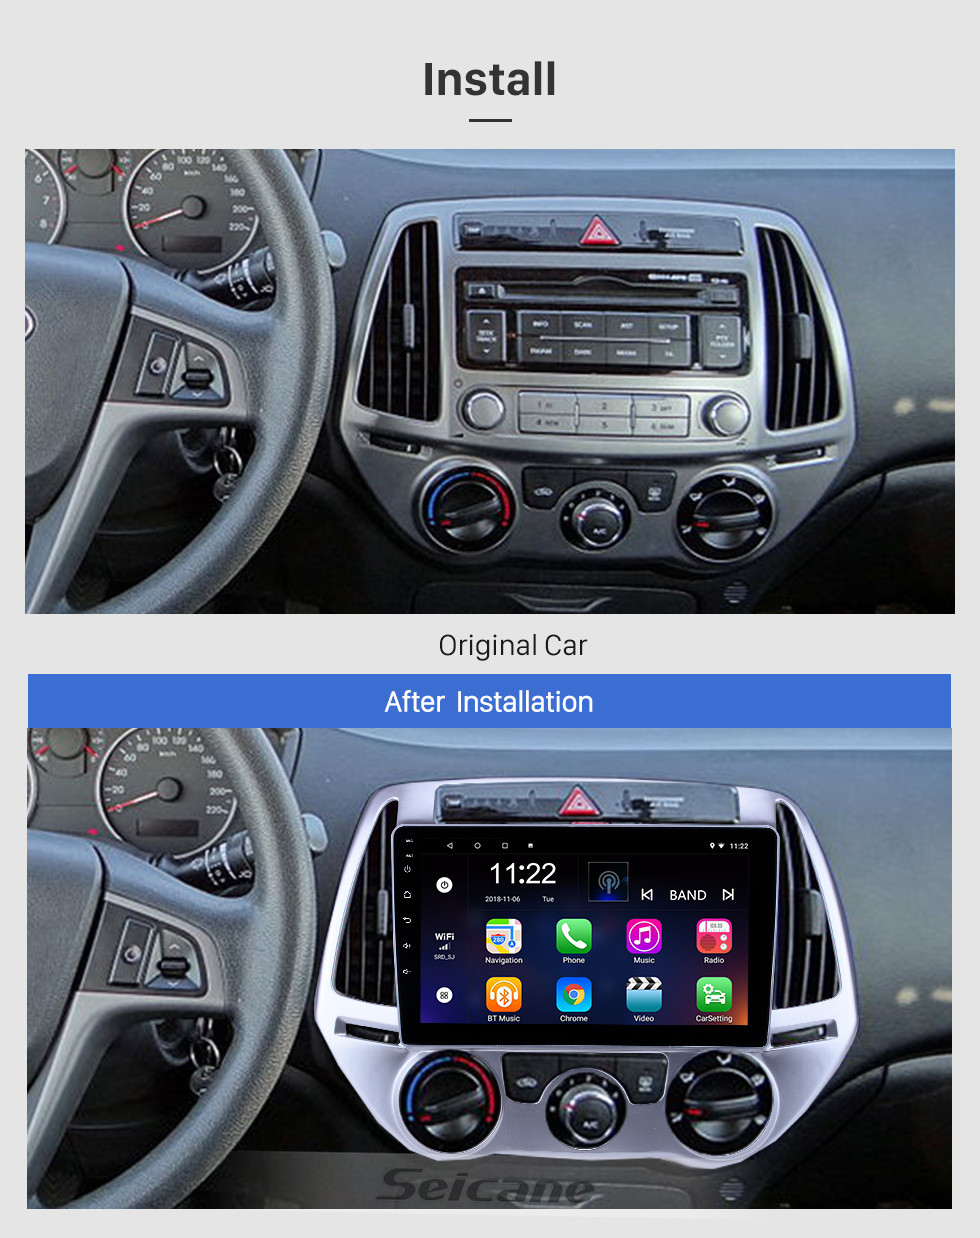 Seicane Android 10.0 9 inch HD Touchscreen GPS Navigation Radio for 2012-2014 Hyundai i20 Manual A/C with Bluetooth USB WIFI support Backup camera Carplay OBD